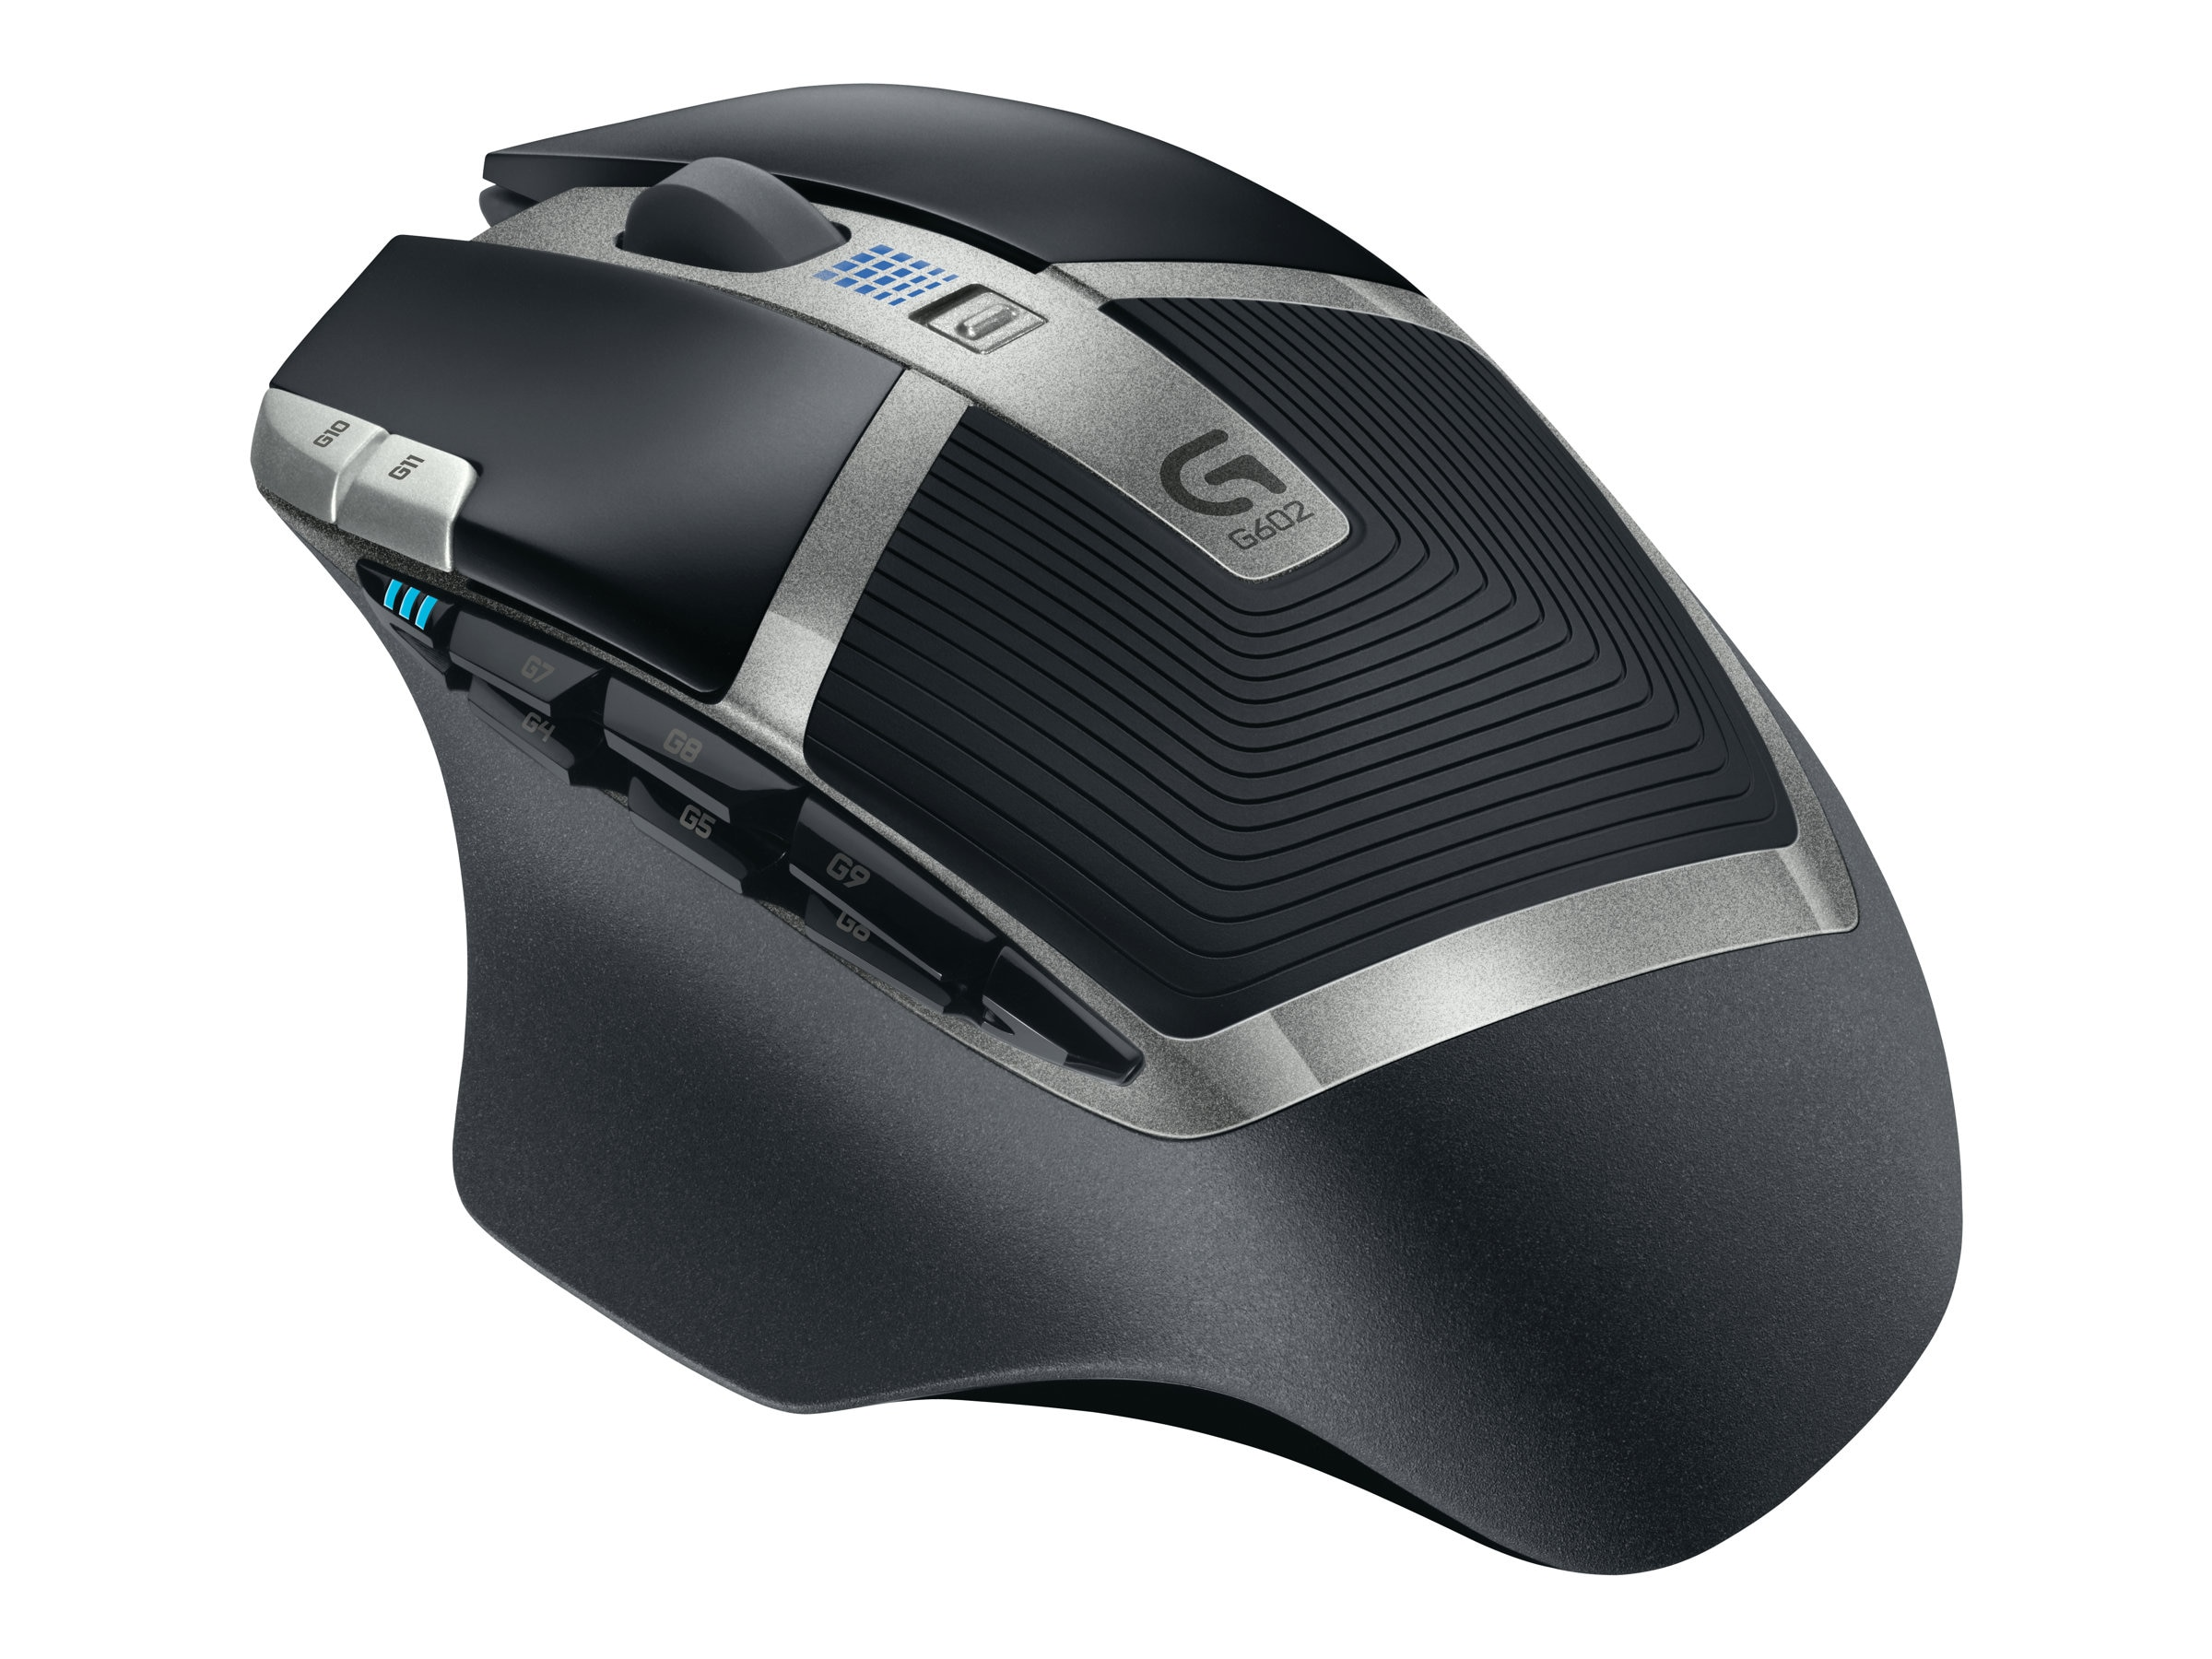 Logitech G602 Wireless Gaming Mouse, 910-003820, 16155795, Mice & Cursor Control Devices